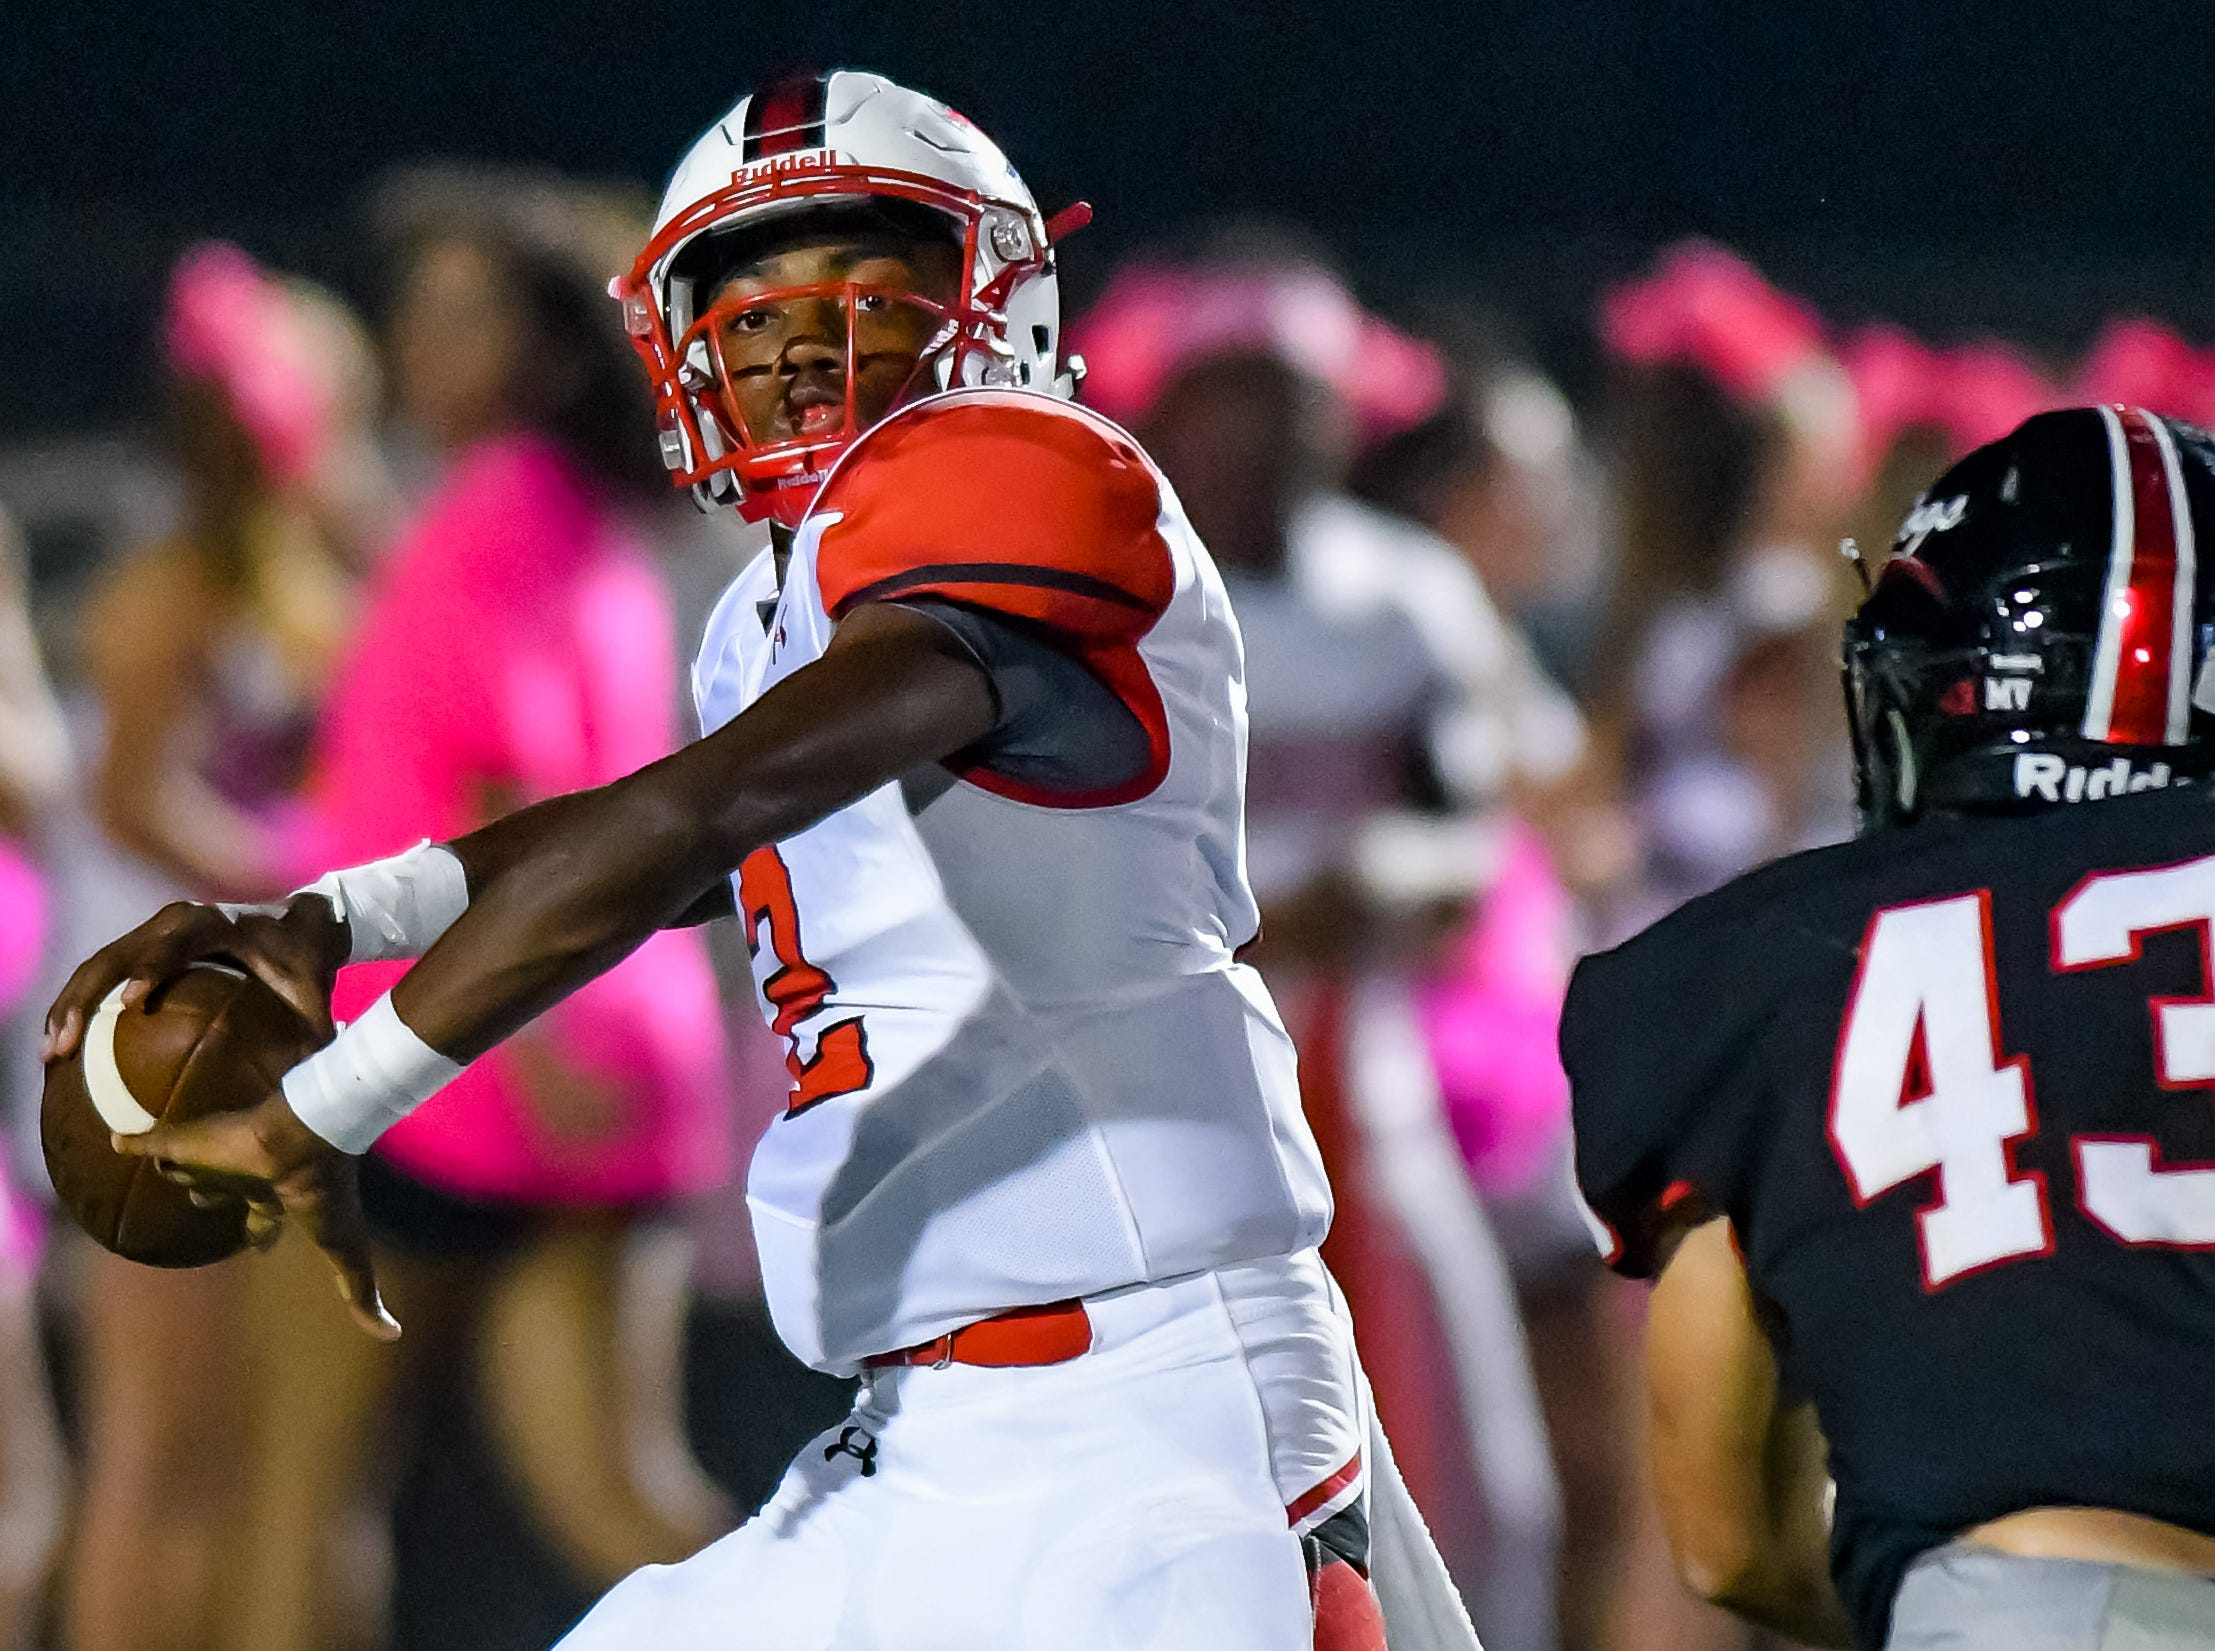 Petal quarterback Decarlos Nicholson (2) looks to pass during game action held Friday October 5, 2018 in Brandon, Mississippi.(Photo/Bob Smith-For the Clarion Ledger)